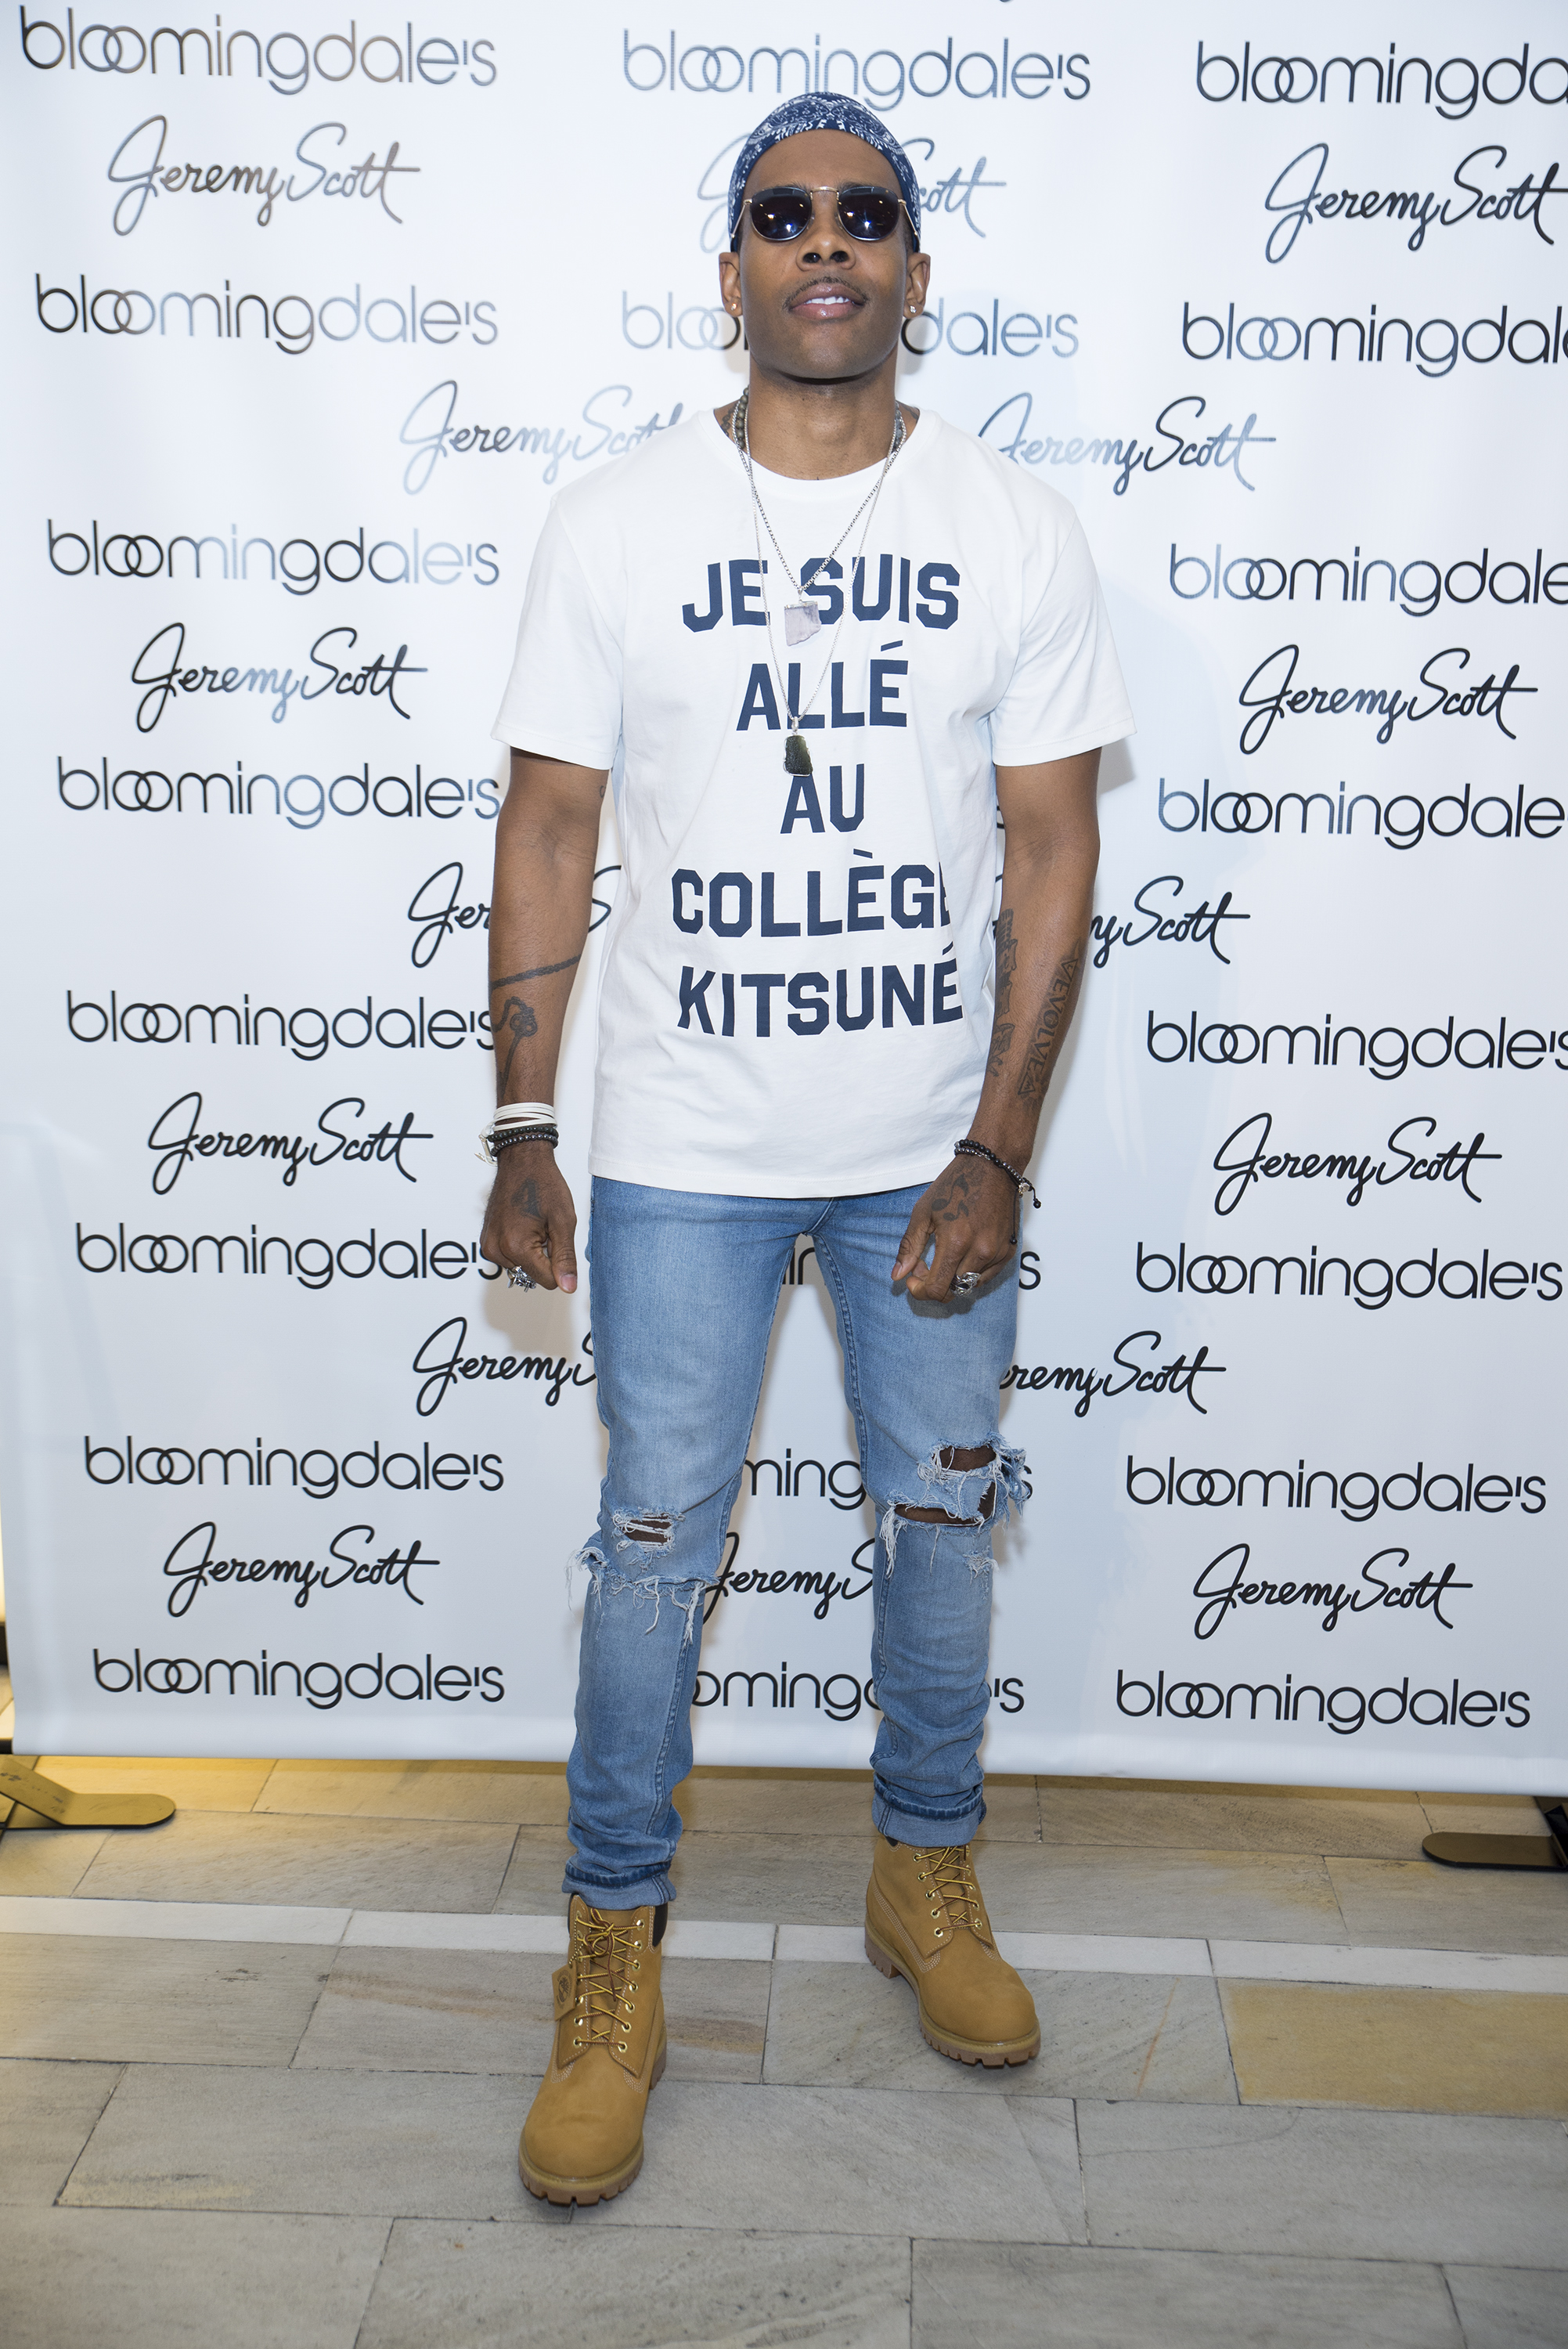 Jeremy Scott Celebrates The Launch Of His New Collection At Bloomingdale's